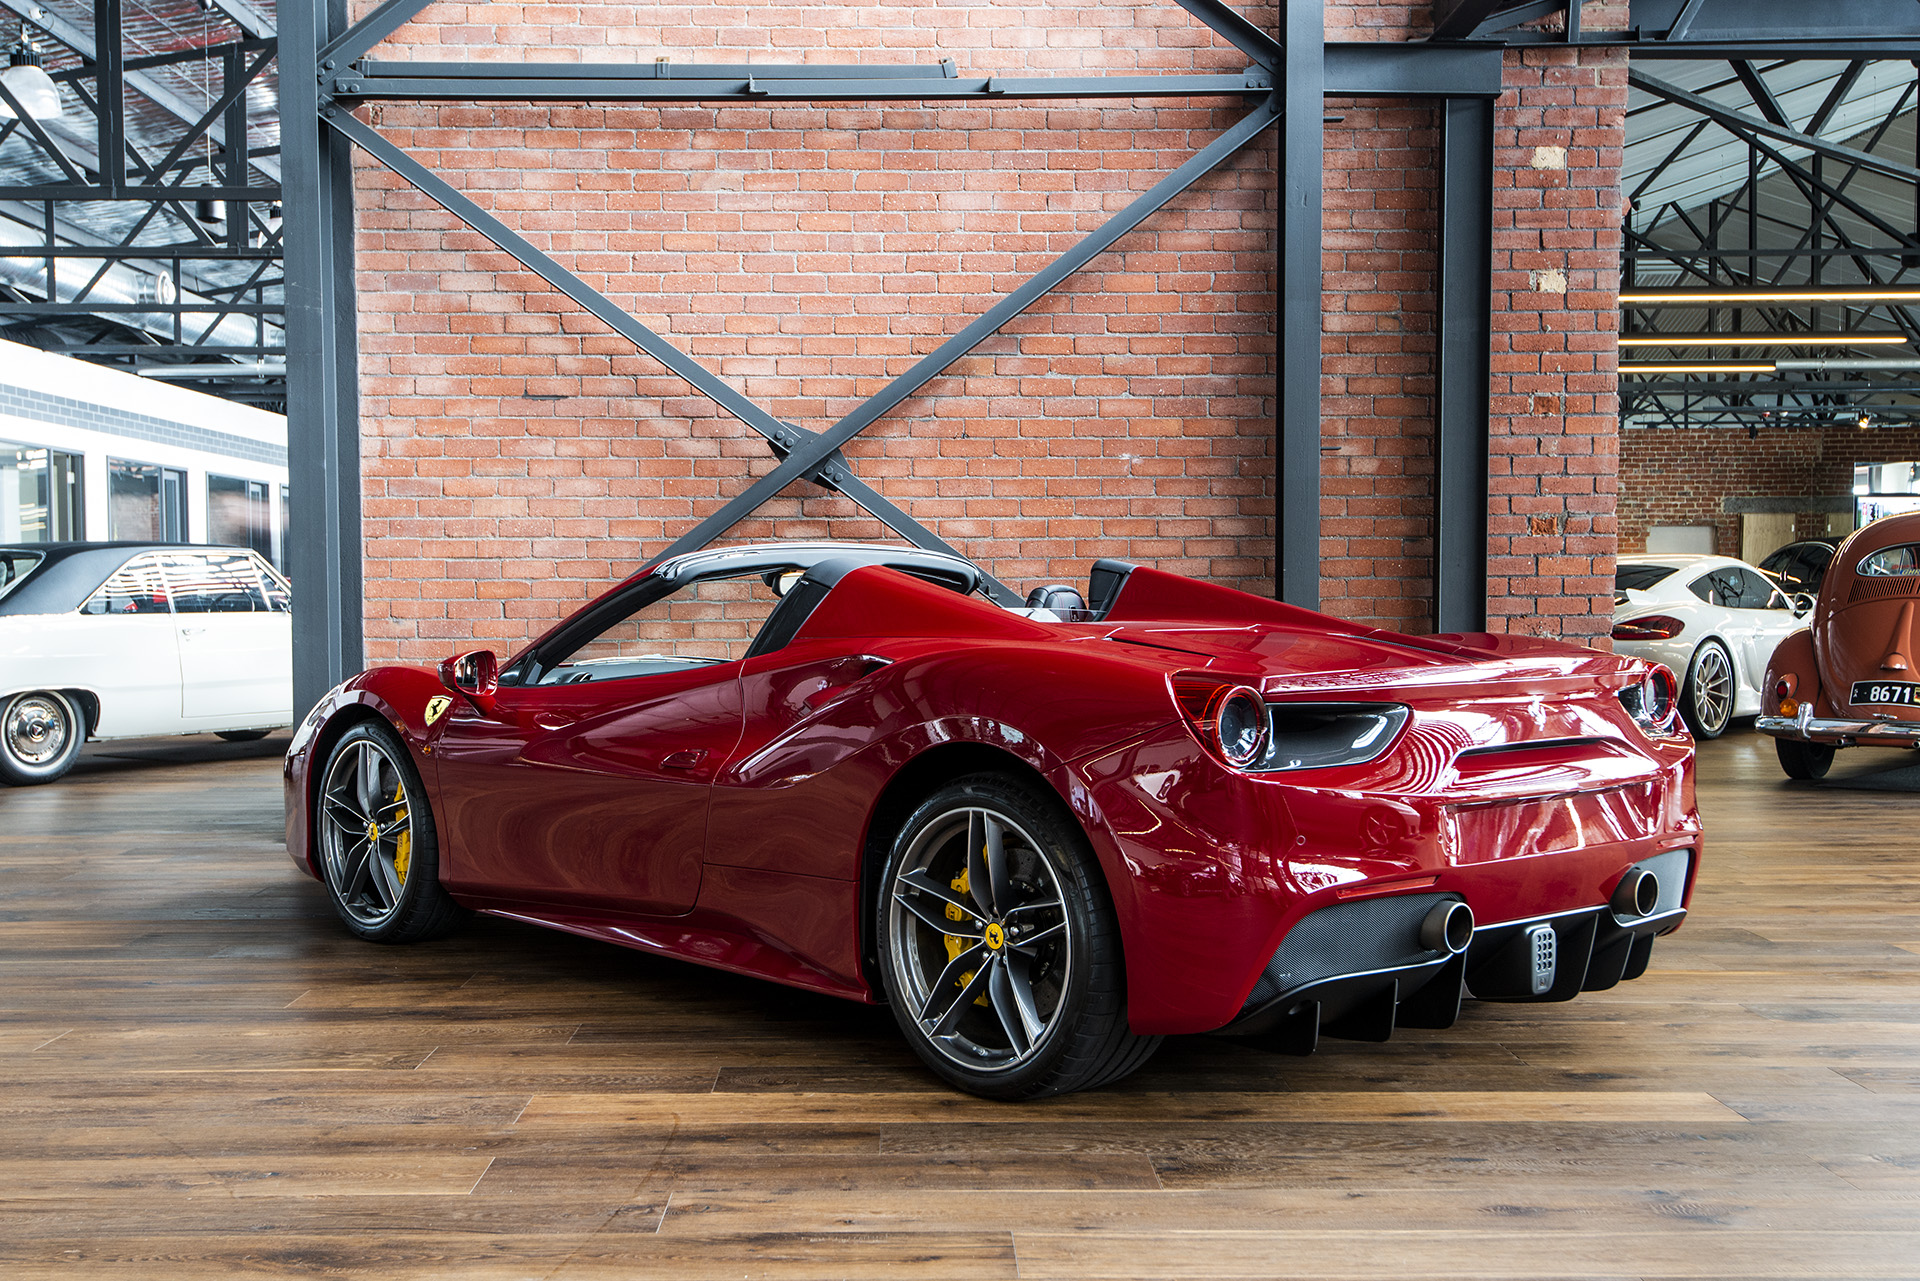 2017 Ferrari 488 Spider Richmonds Classic And Prestige Cars Storage And Sales Adelaide Australia